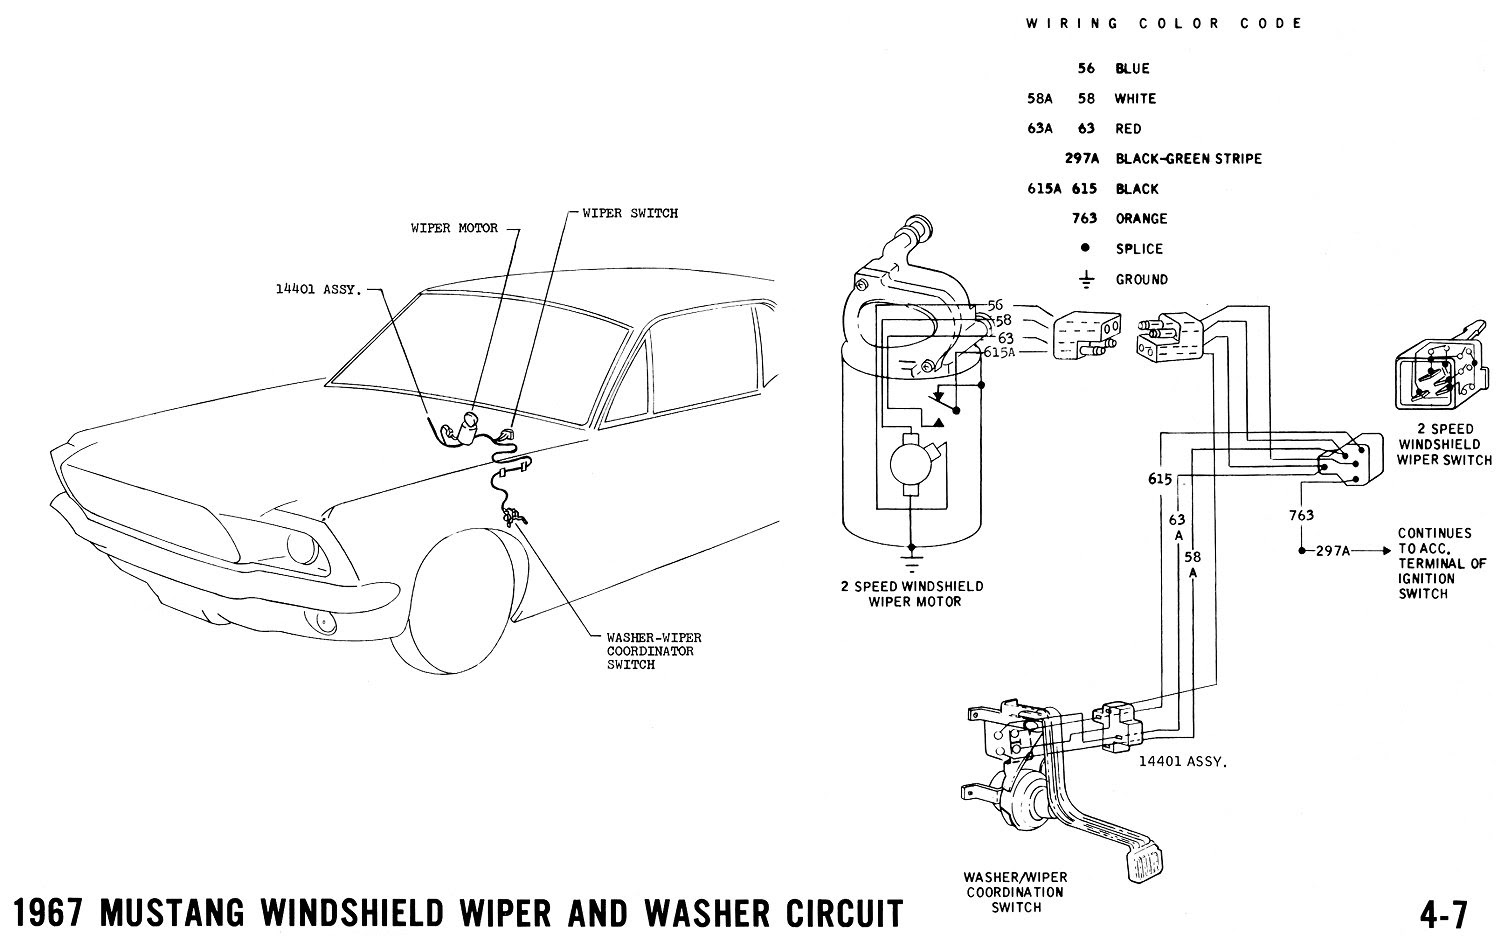 1966 Mustang Windshield Wiper Wiring Diagrams Wiring Diagram Hard Alternator Hard Alternator Lasuiteclub It